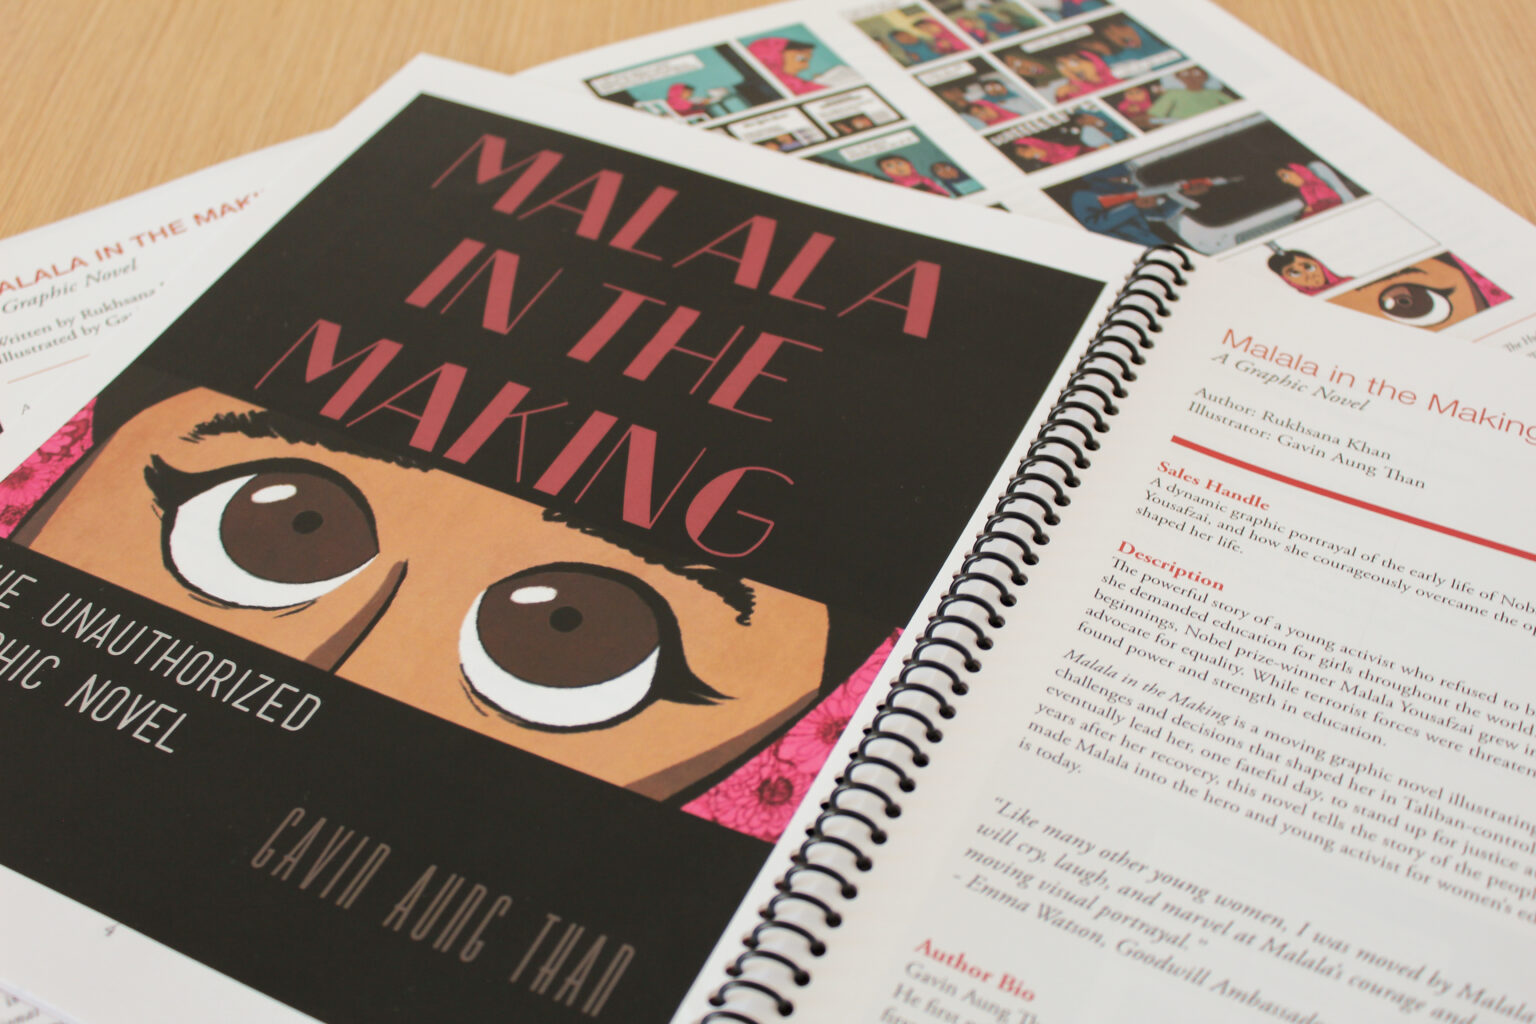 Wildfire Press project materials – Malala in the Making